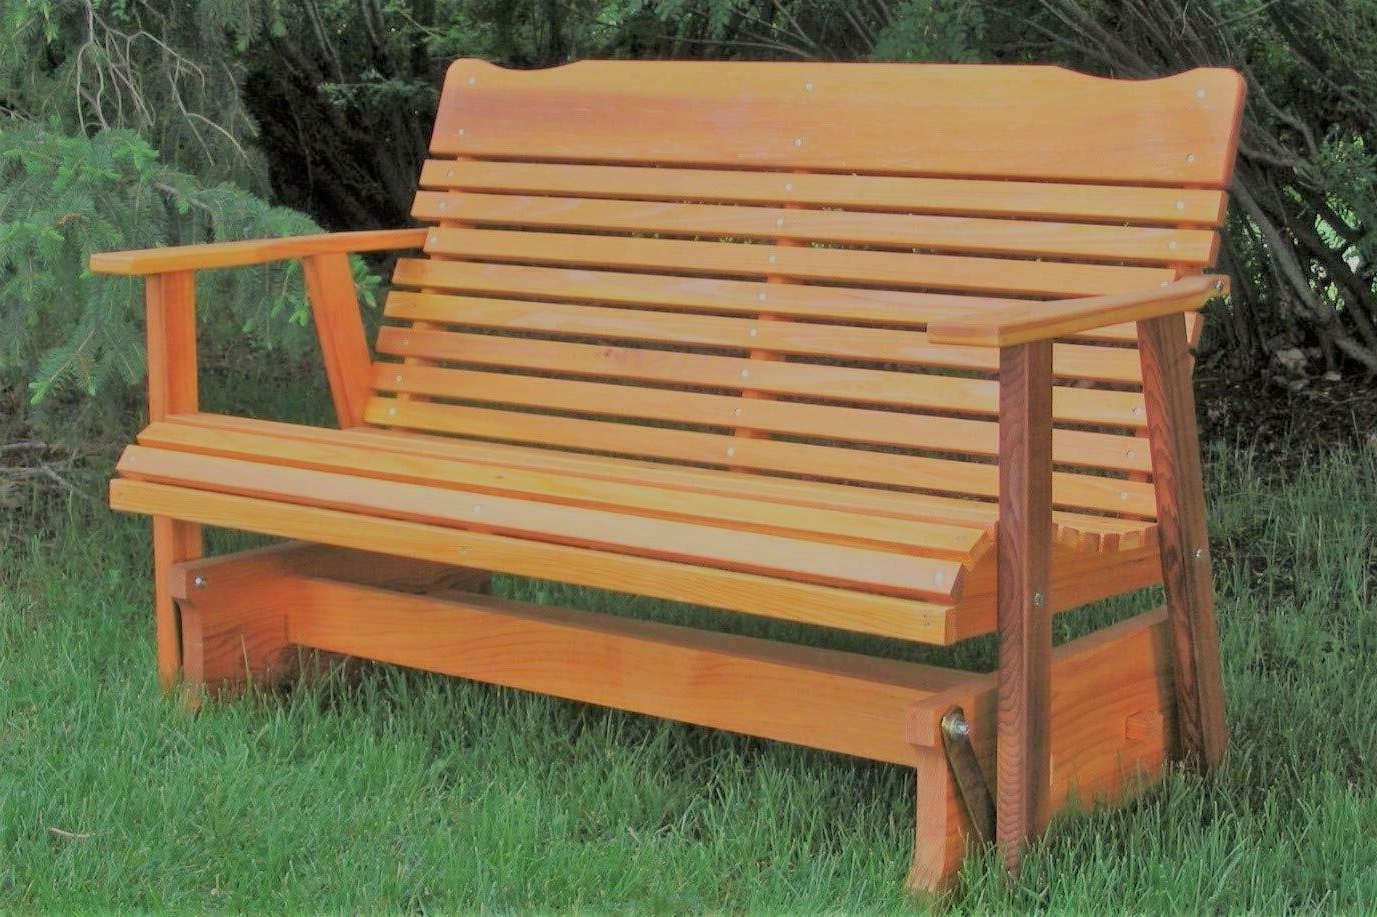 Wood Glider Bench Outdoor Patio Furniture Garden Deck Rocker Porch Amish  Crafted For Fashionable Hardwood Porch Glider Benches (View 30 of 30)